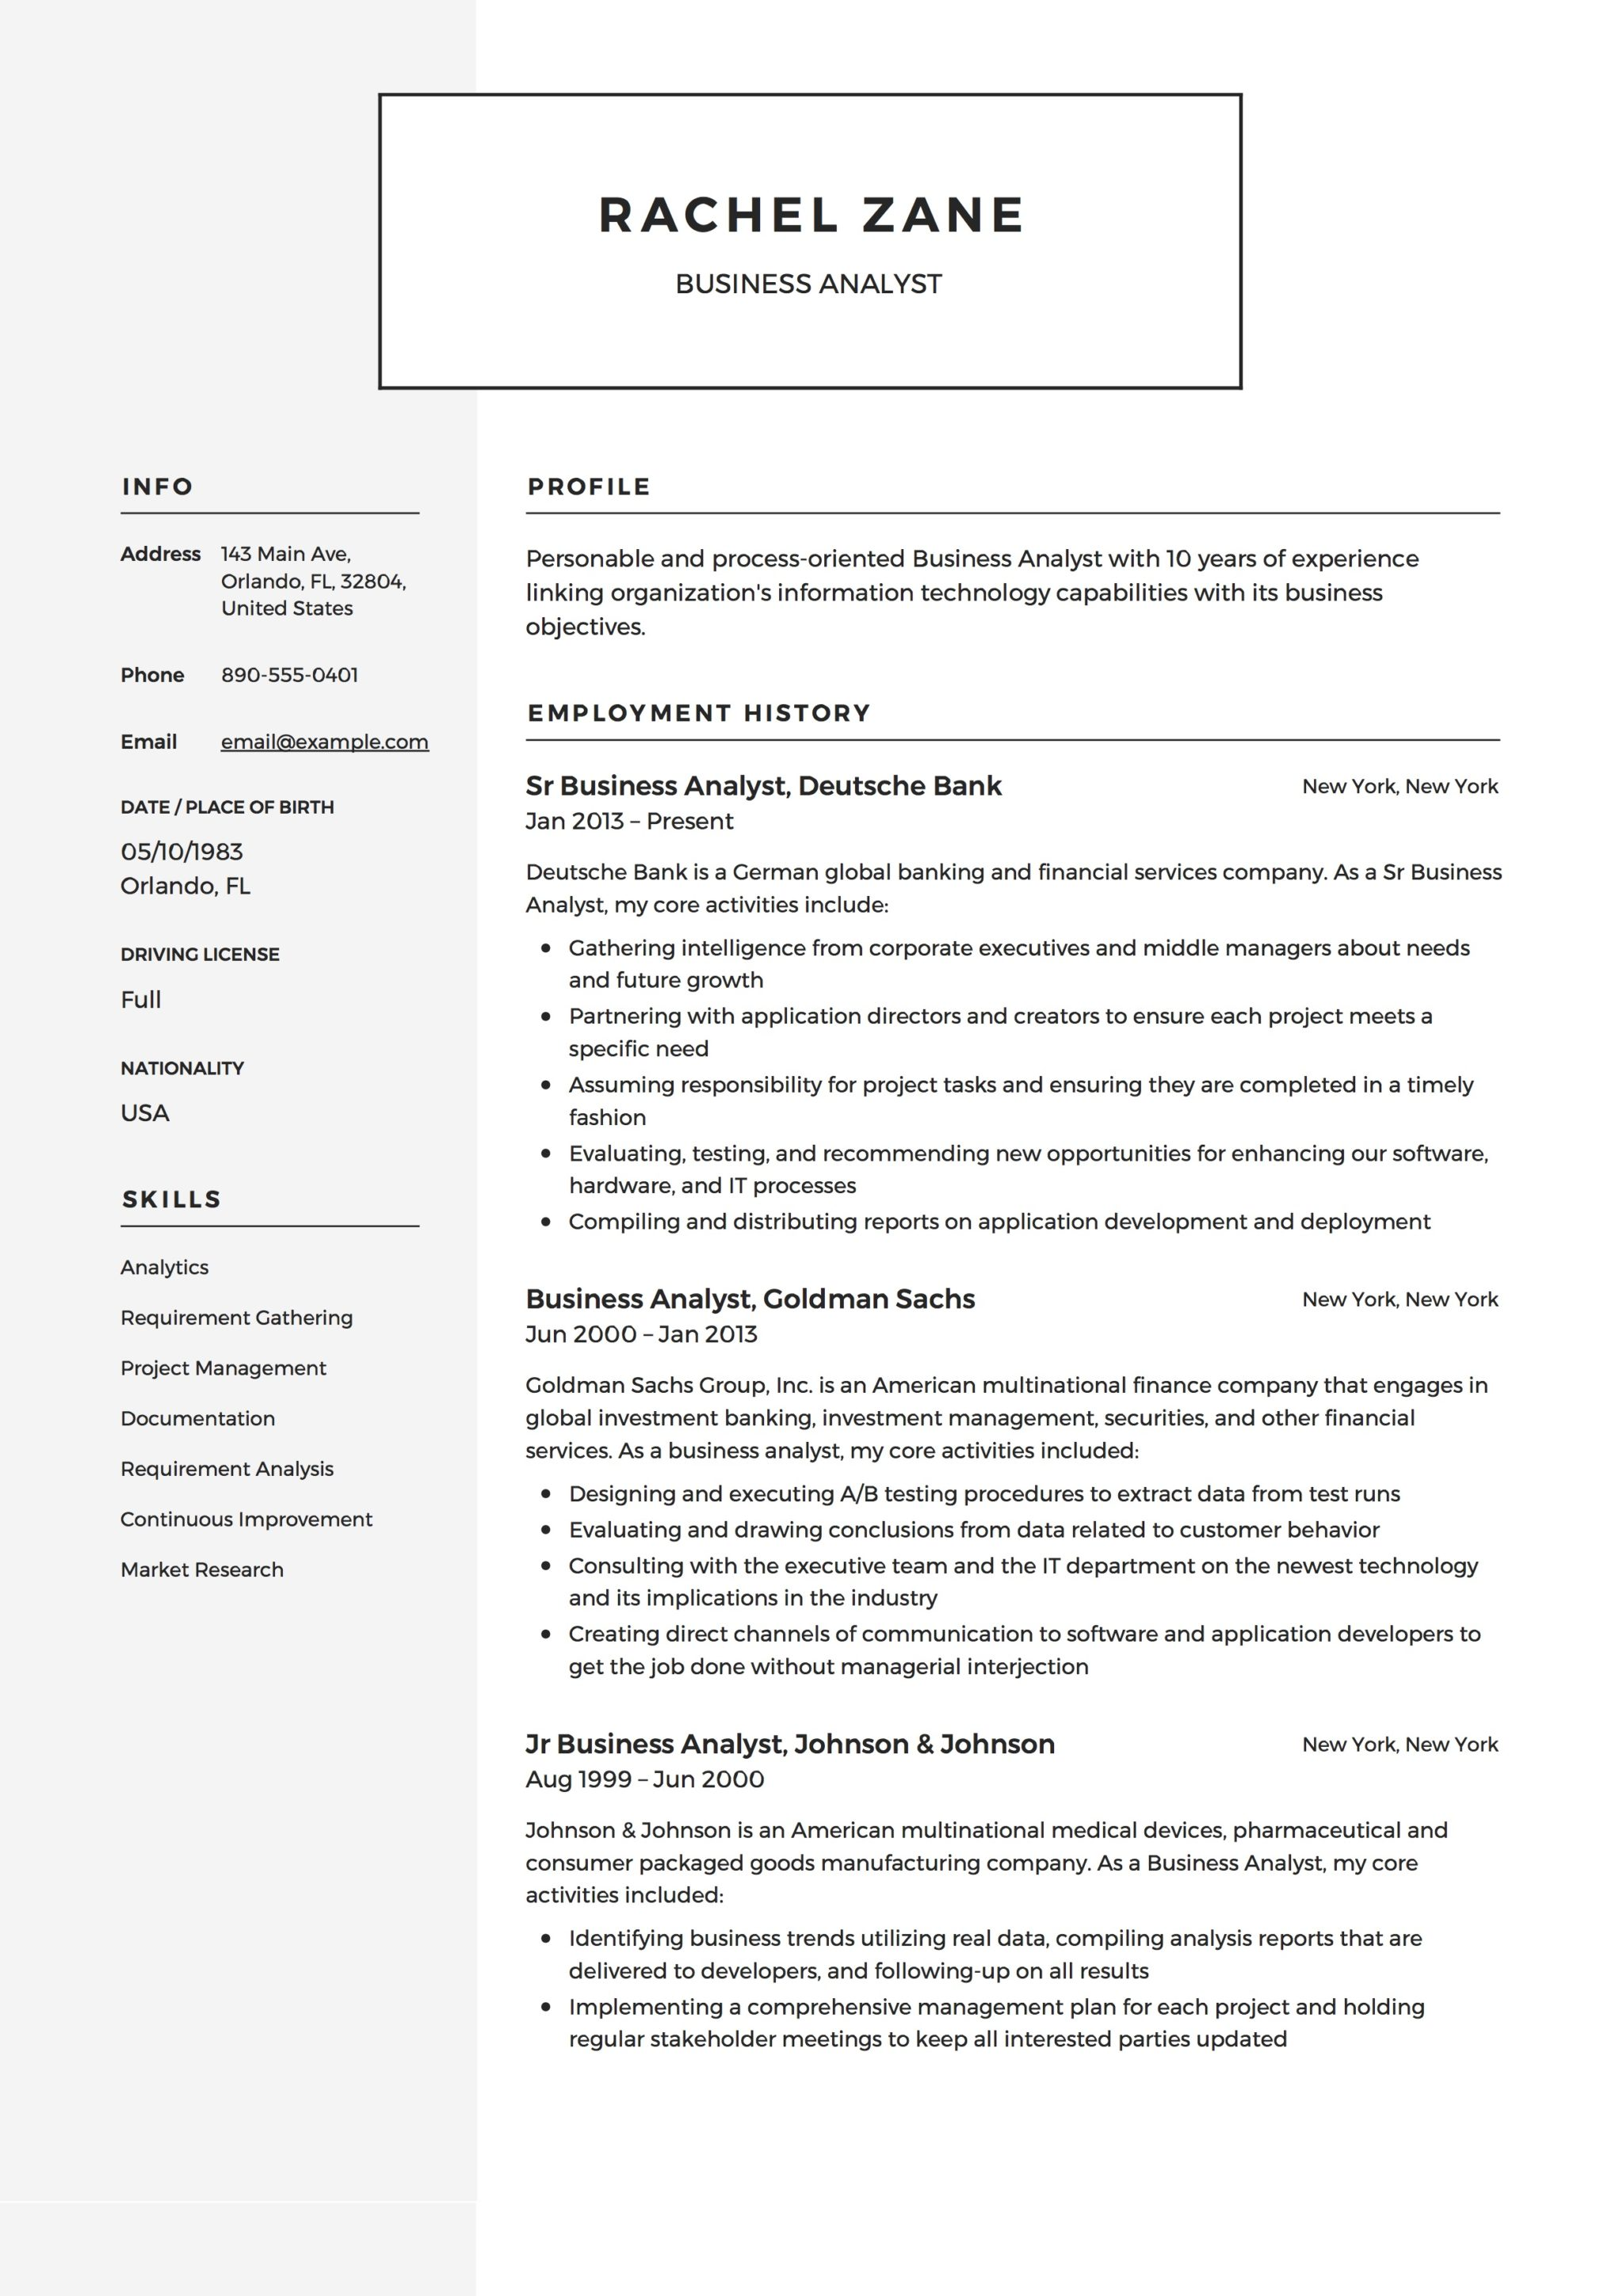 12 business analyst resume samples 2018 free downloads business analyst resume sample accmission